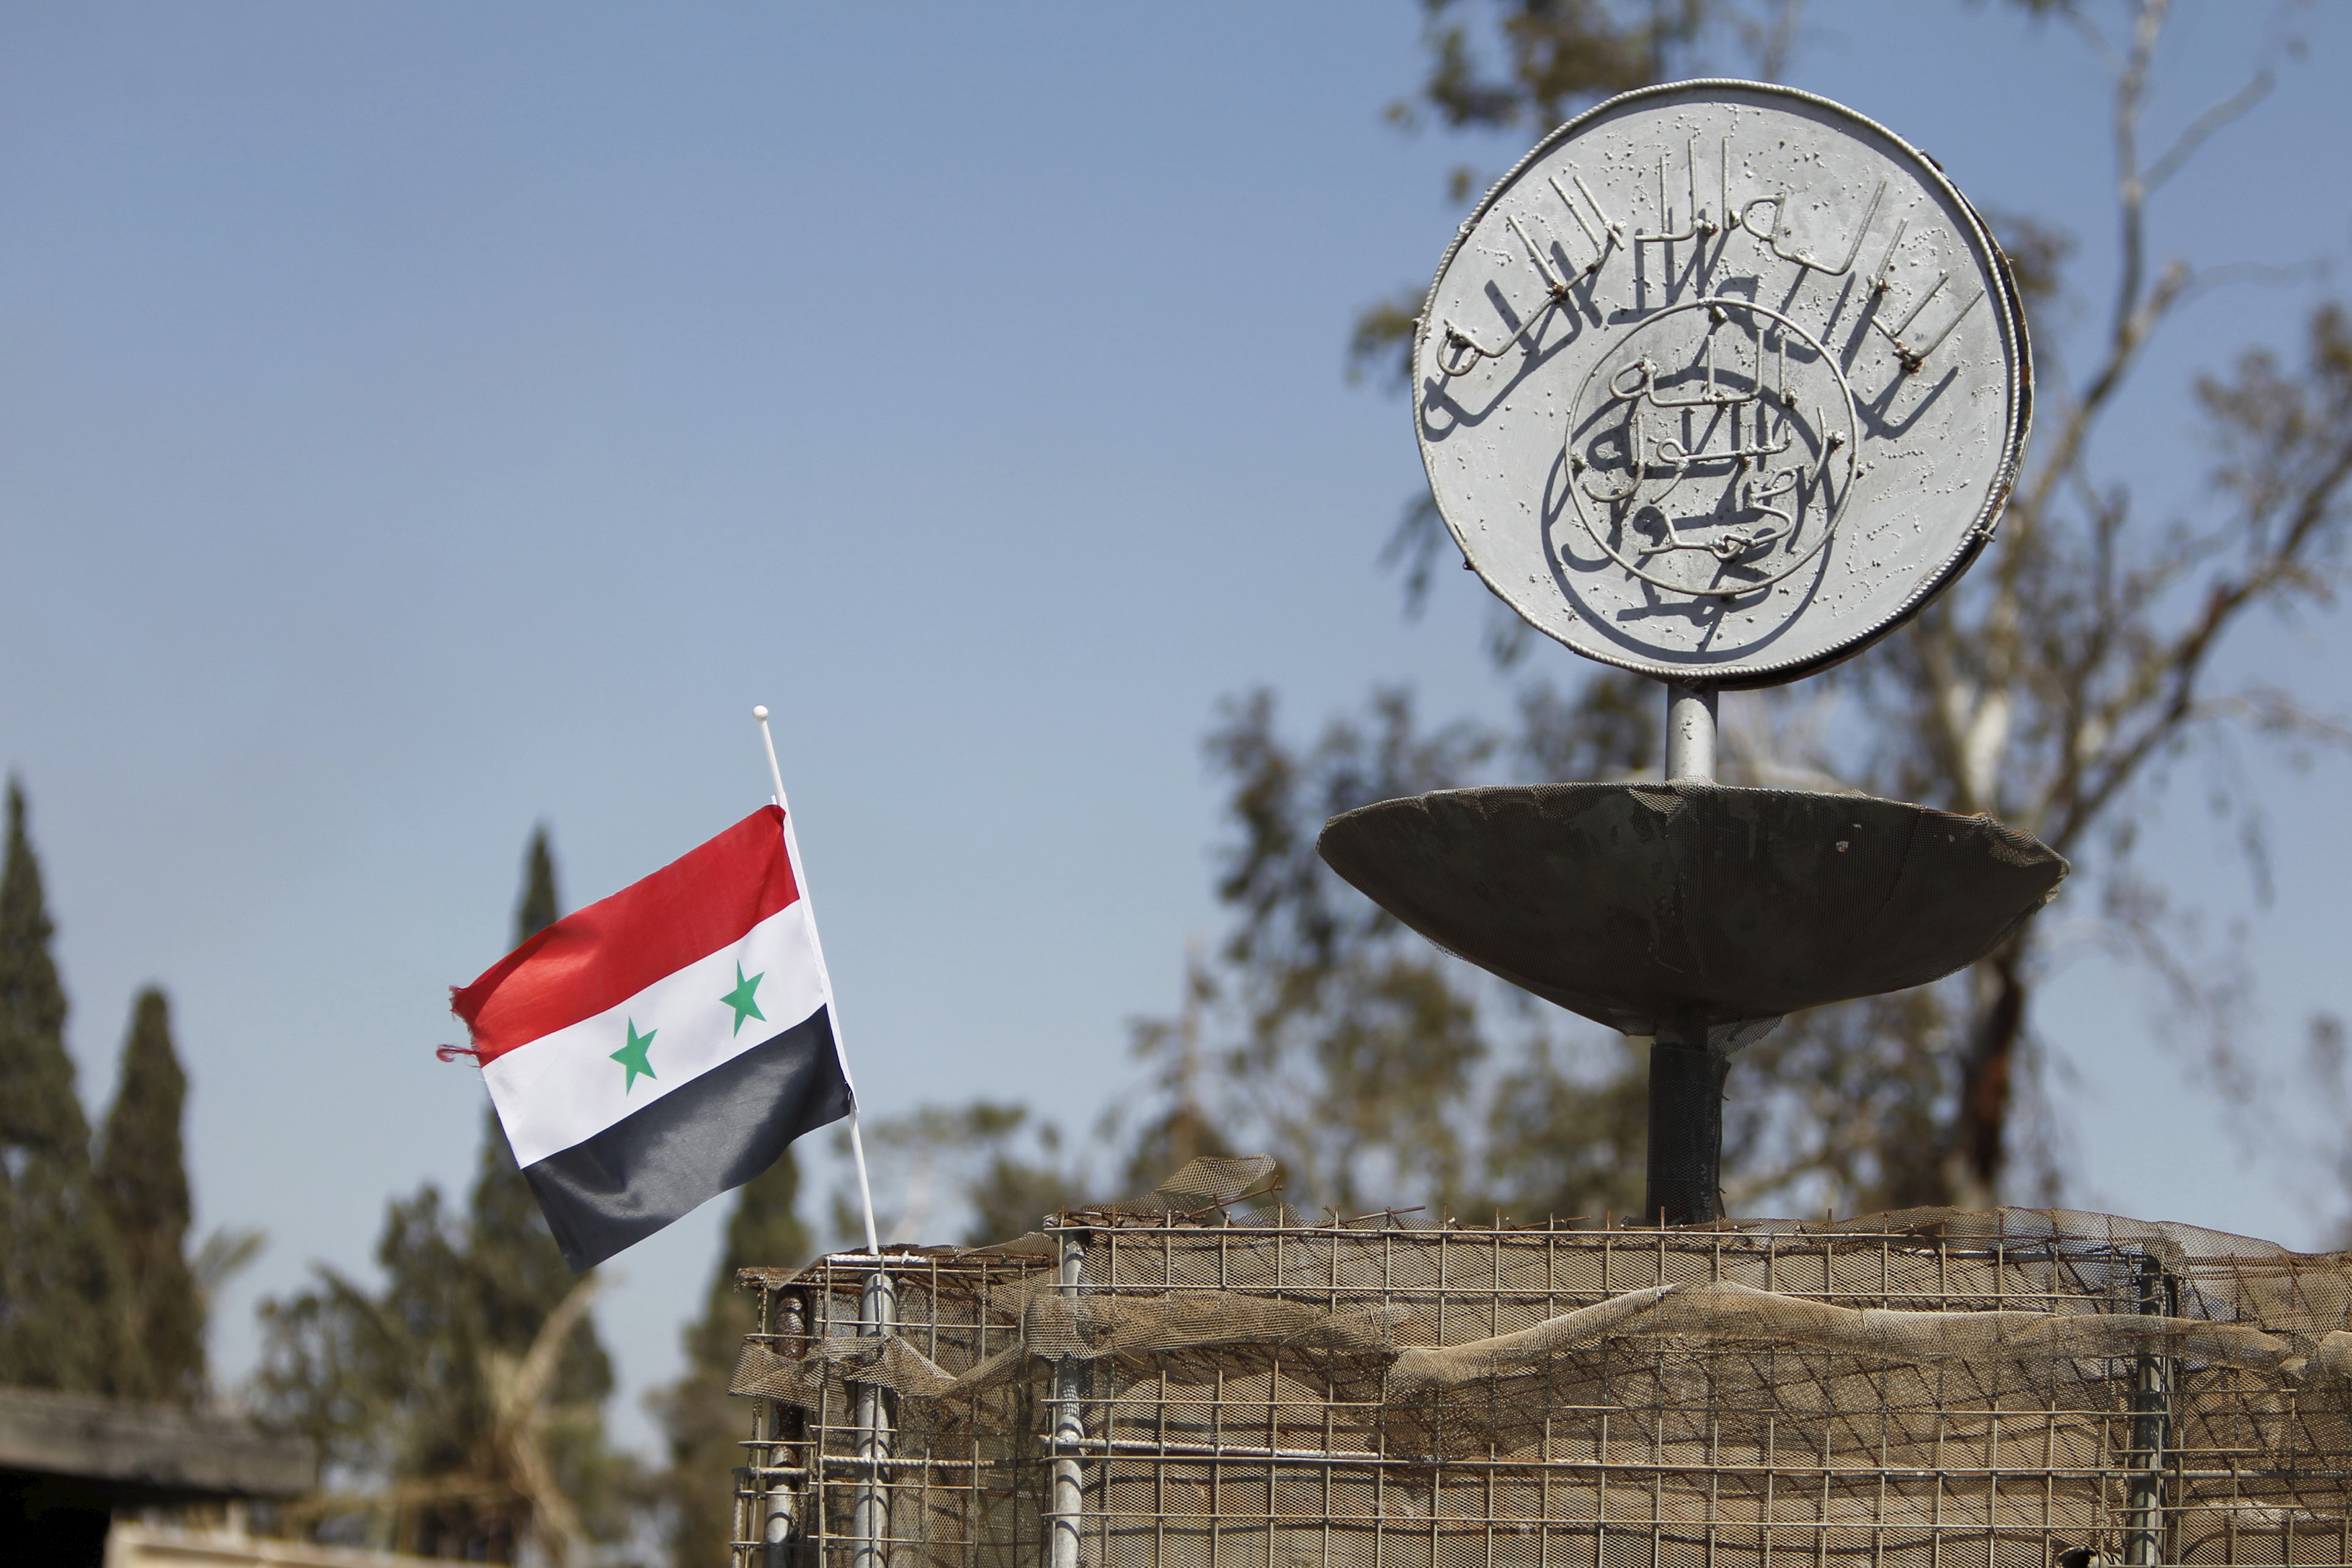 A Syrian national flag flutters next to the Islamic State's slogan at a roundabout where executions were carried out by ISIS militants in the city of Palmyra, in Homs Governorate, Syria April 1, 2016. REUTERS/Omar Sanadiki